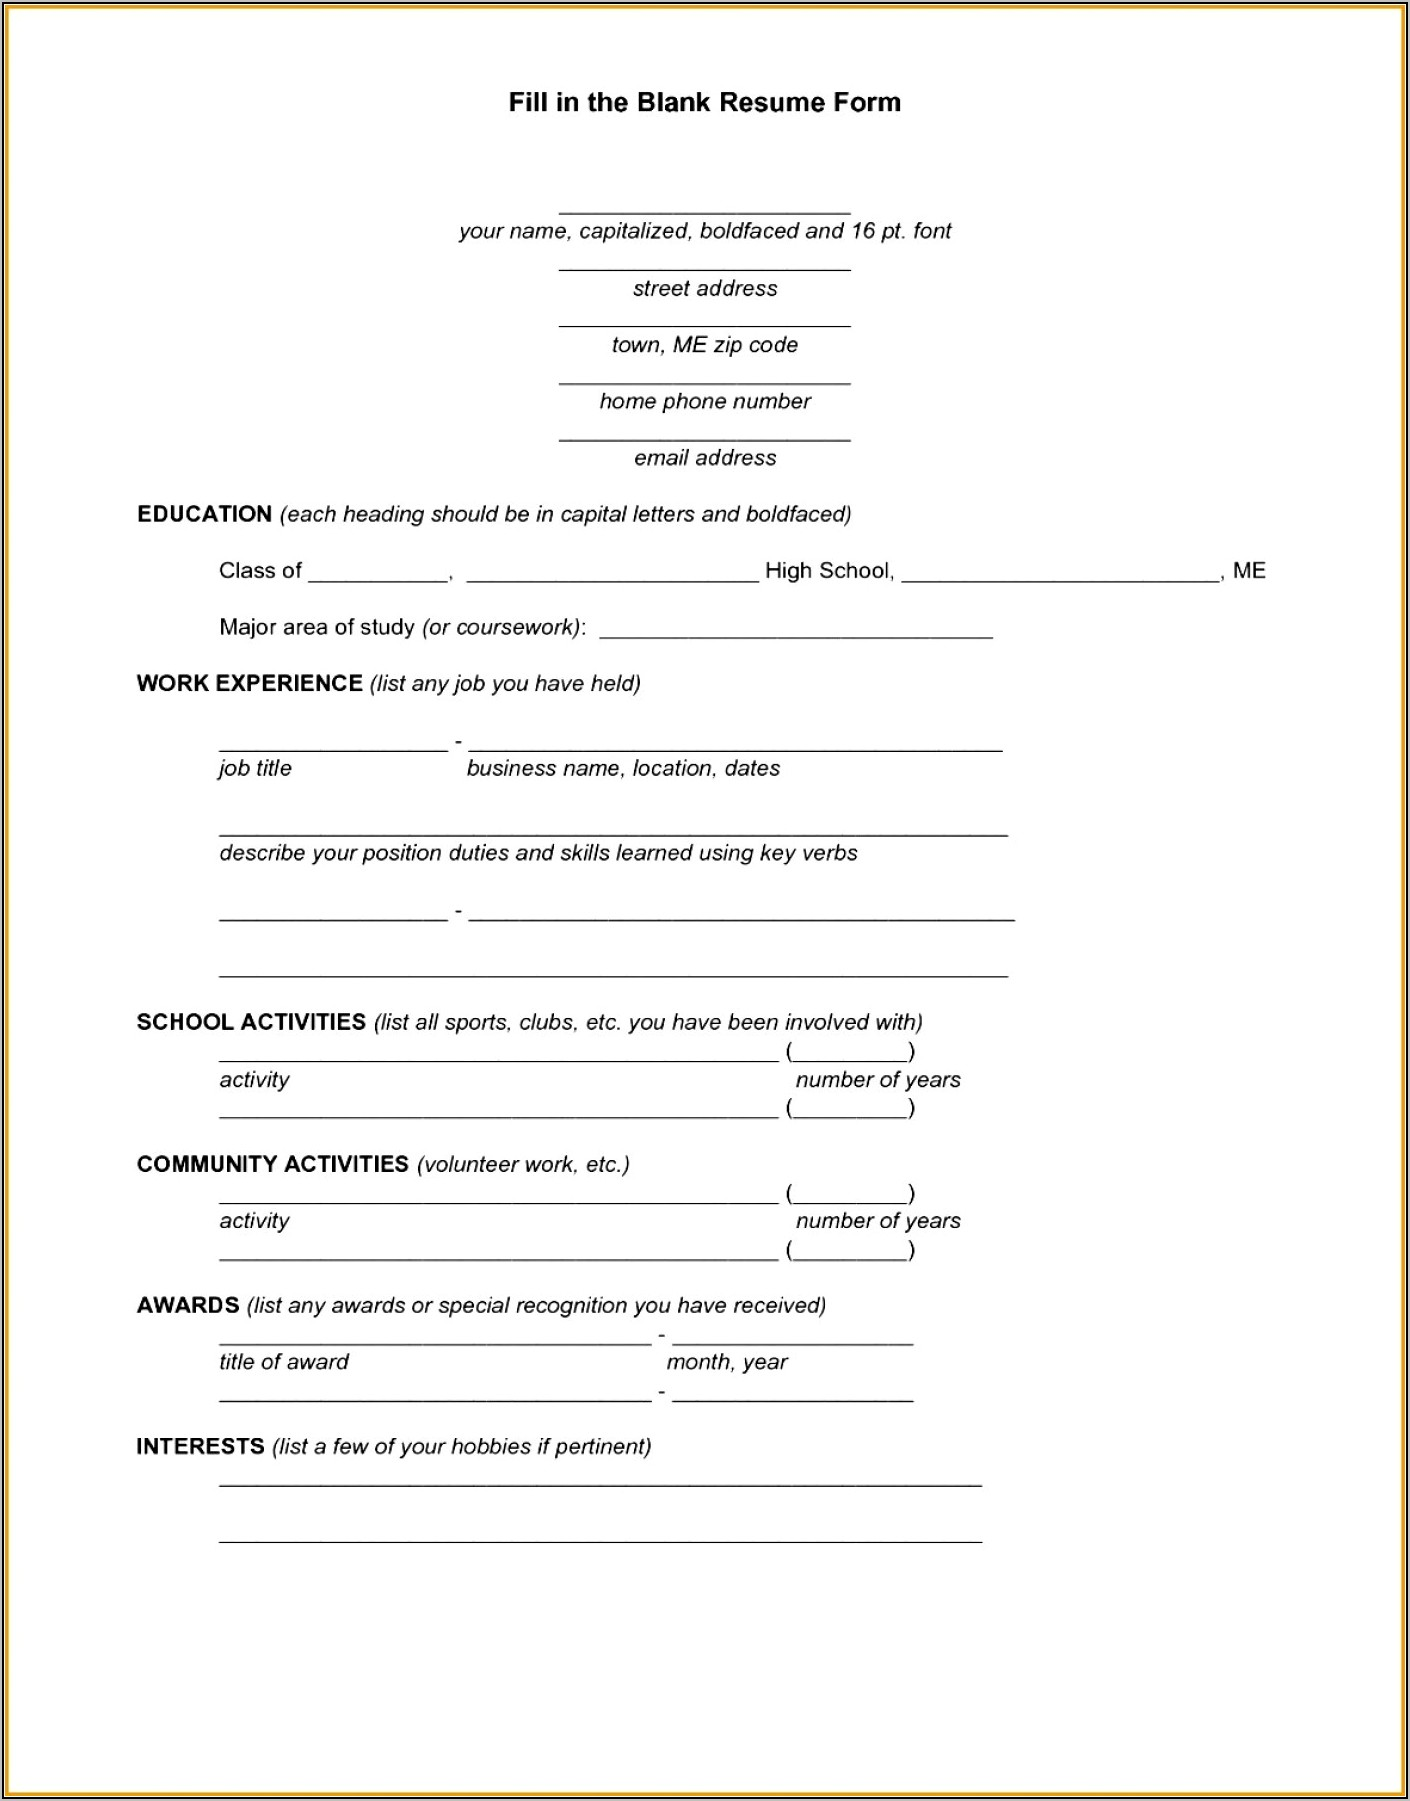 Free Download Blank Resume Form